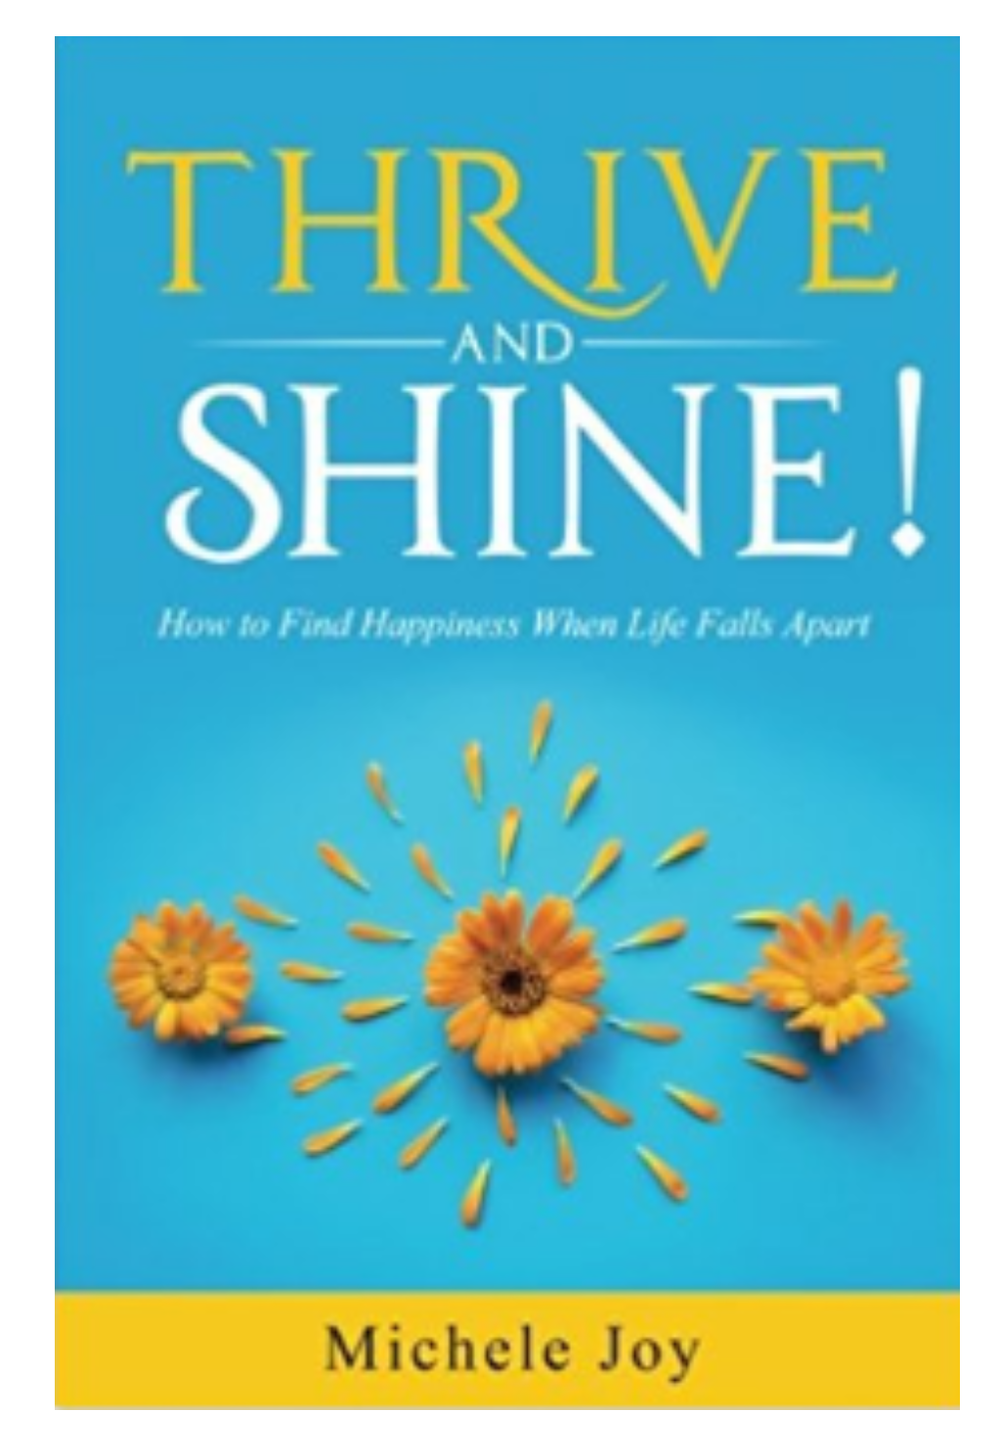 thrive and shine book.png